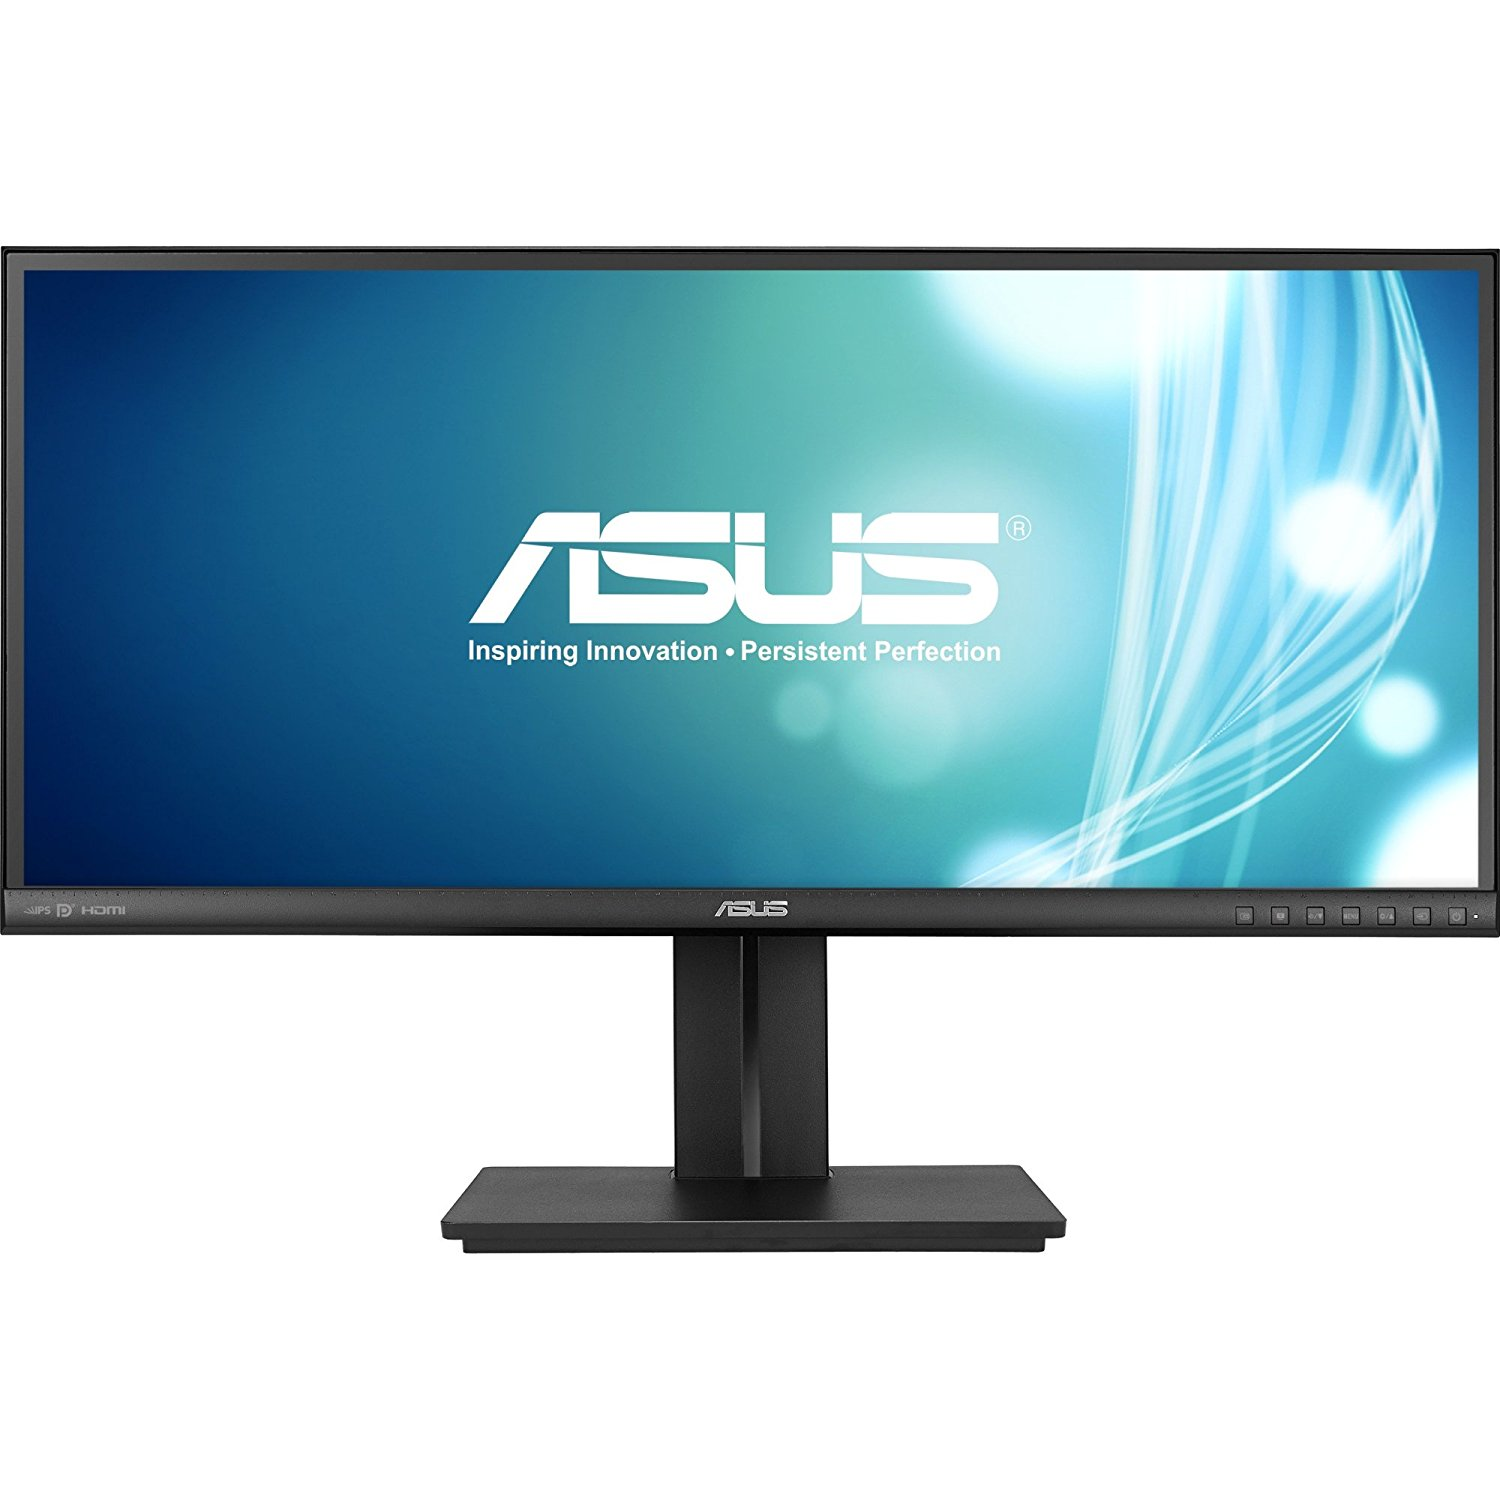 "Asus Computer International - Asus Pb298q 29"" Led Lcd Monitor - 21:9 - 5 Ms - Adjustable Display Angle - 2560 X 1080 - 16.7 Million Colors - 300 Nit - 80,000,000:1 - Uw-Uxga - Speakers - Dvi - Hdmi - Displayport - 31.70 W - Black - Energy Star 6.0, Epeat Gold, Erp, Rohs, Tco Certified Displays 6.0,"